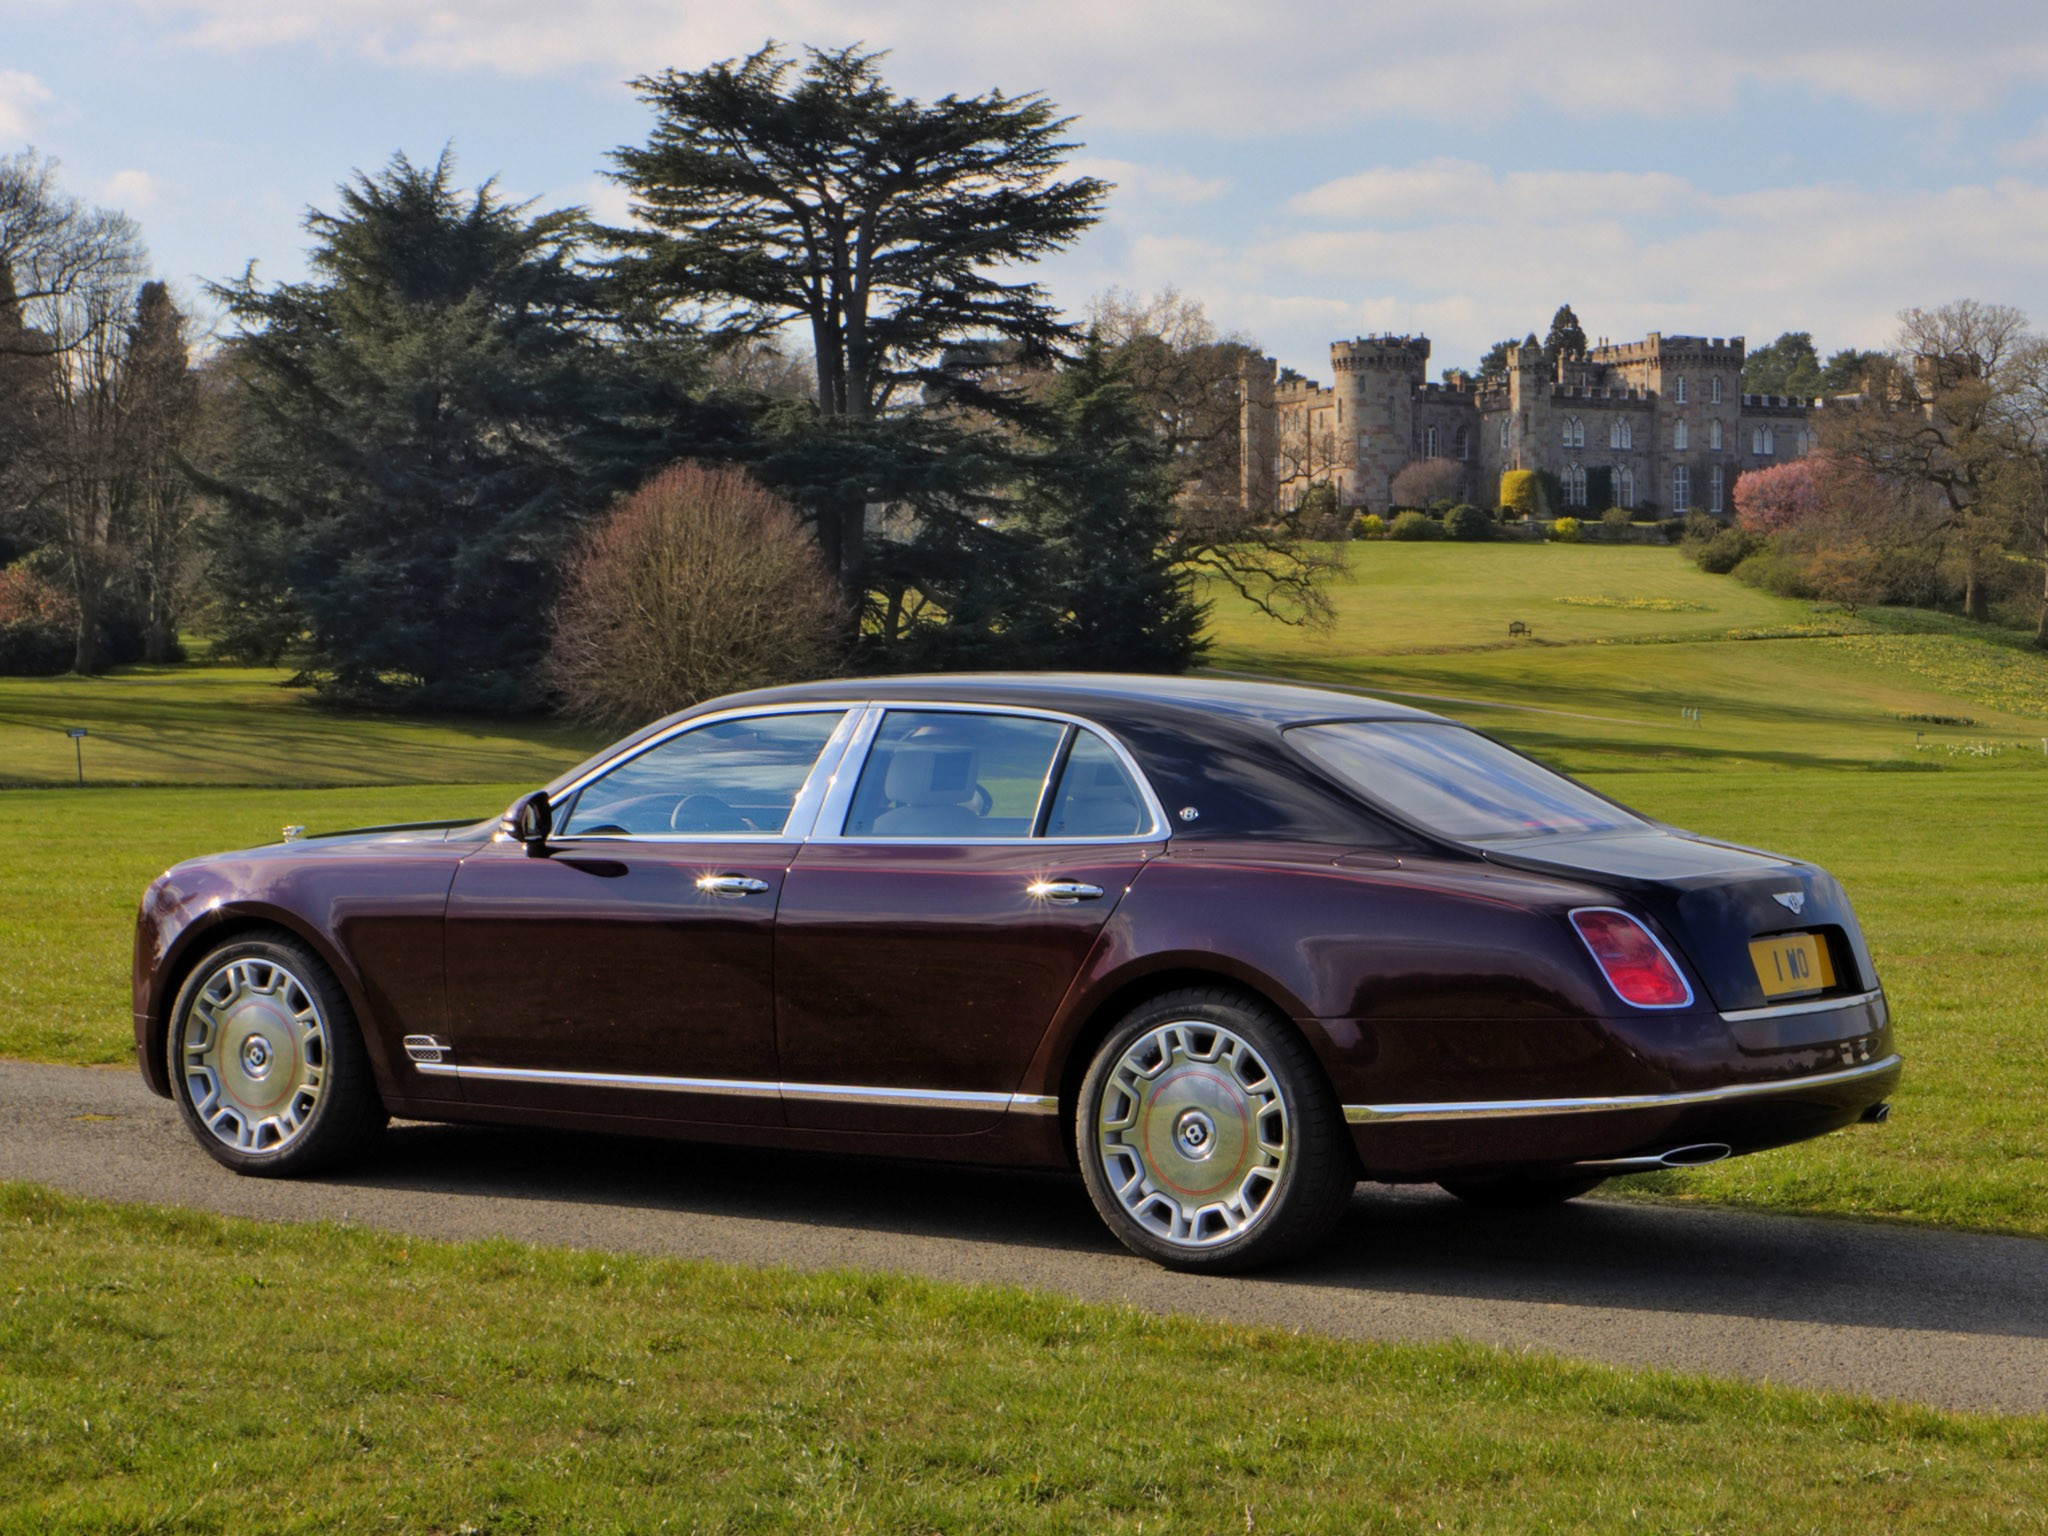 2012 Bentley Mulsanne Diamond Jubilee